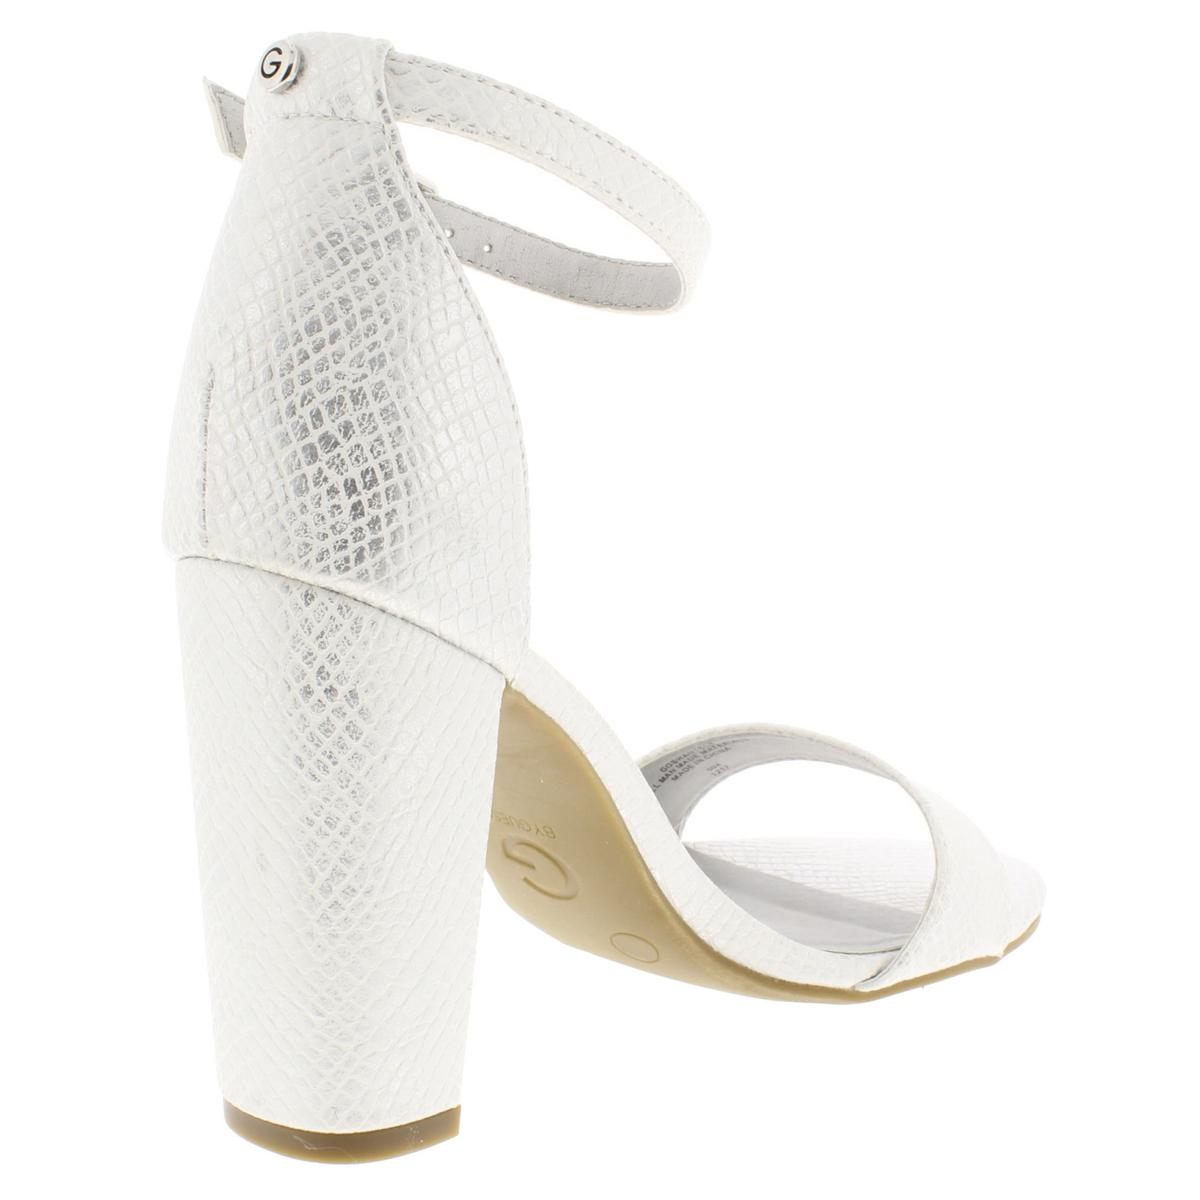 G-by-Guess-Womens-Shantel-3-Padded-Insole-Dress-Sandals-Shoes-BHFO-2561 thumbnail 12